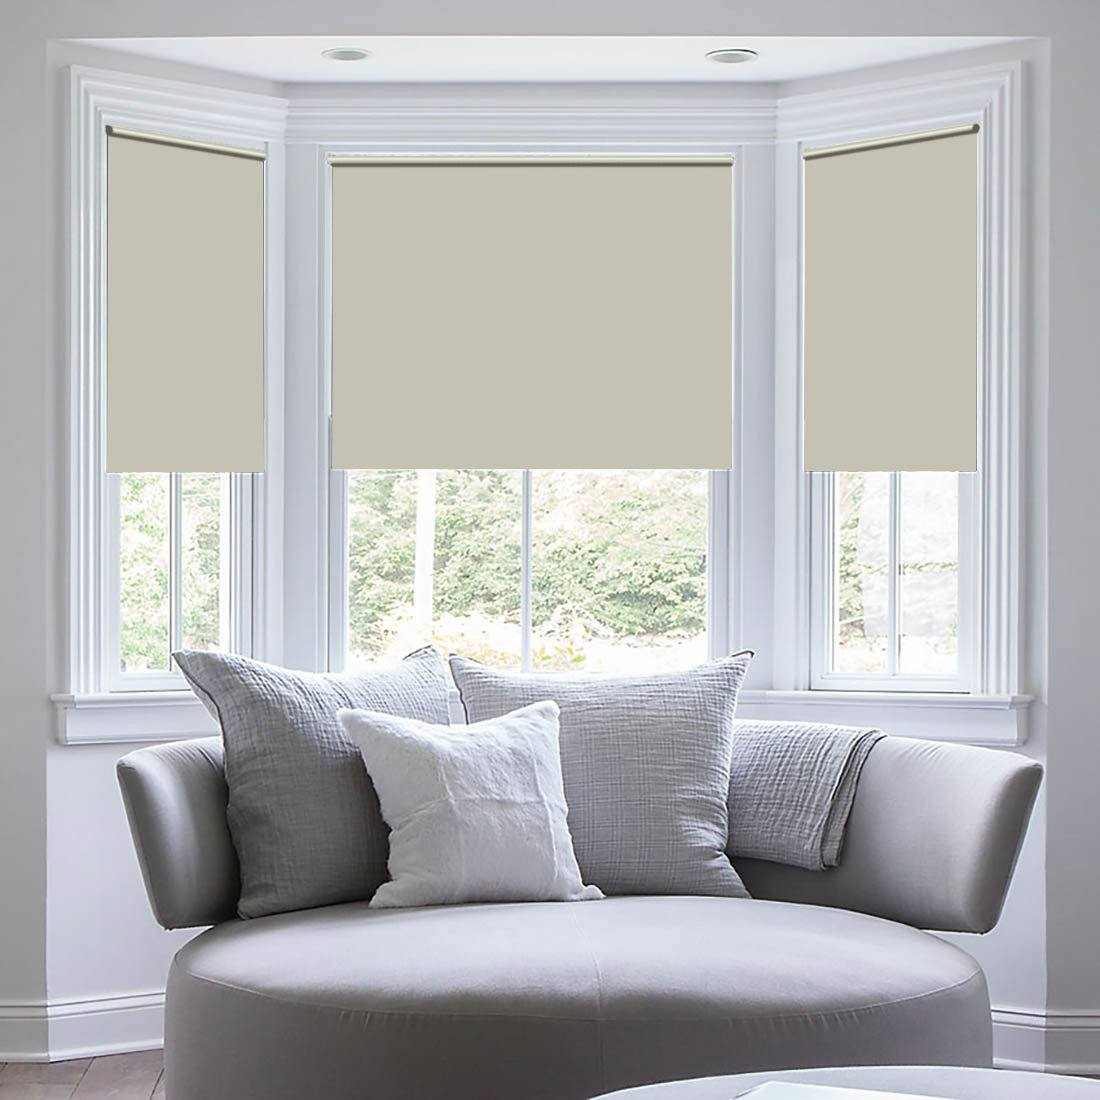 Gray sunny lit bay window with mild colored roller blinds